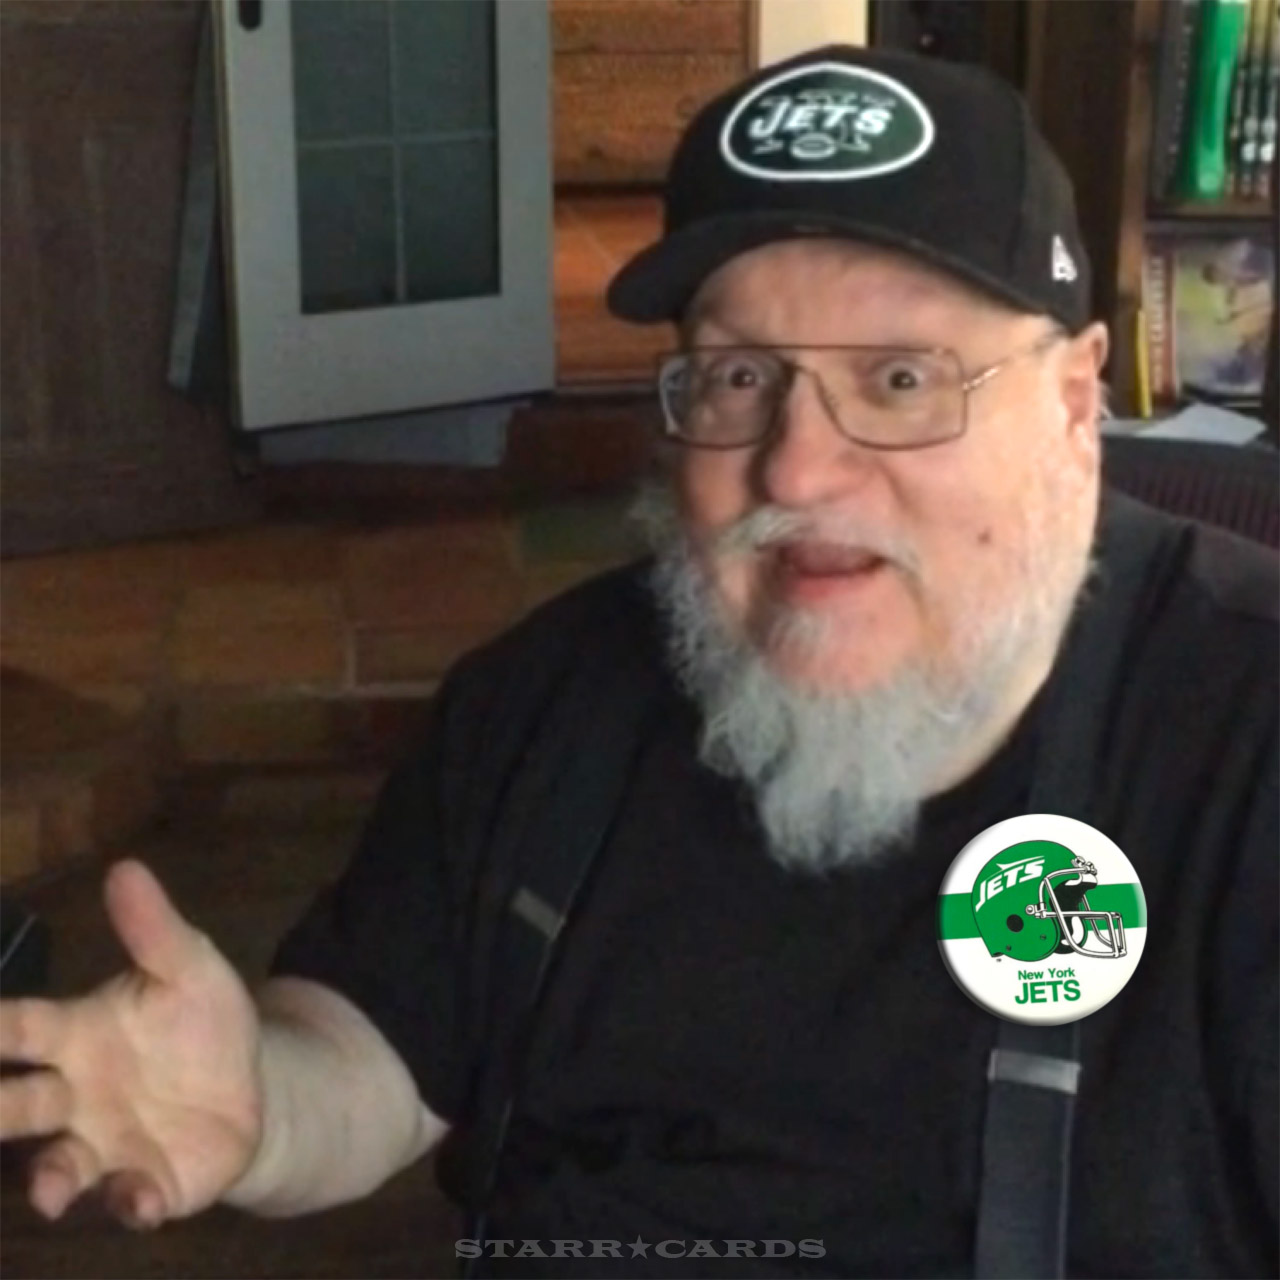 'Game of Thrones' creator George RR Martin loves his New York Jets